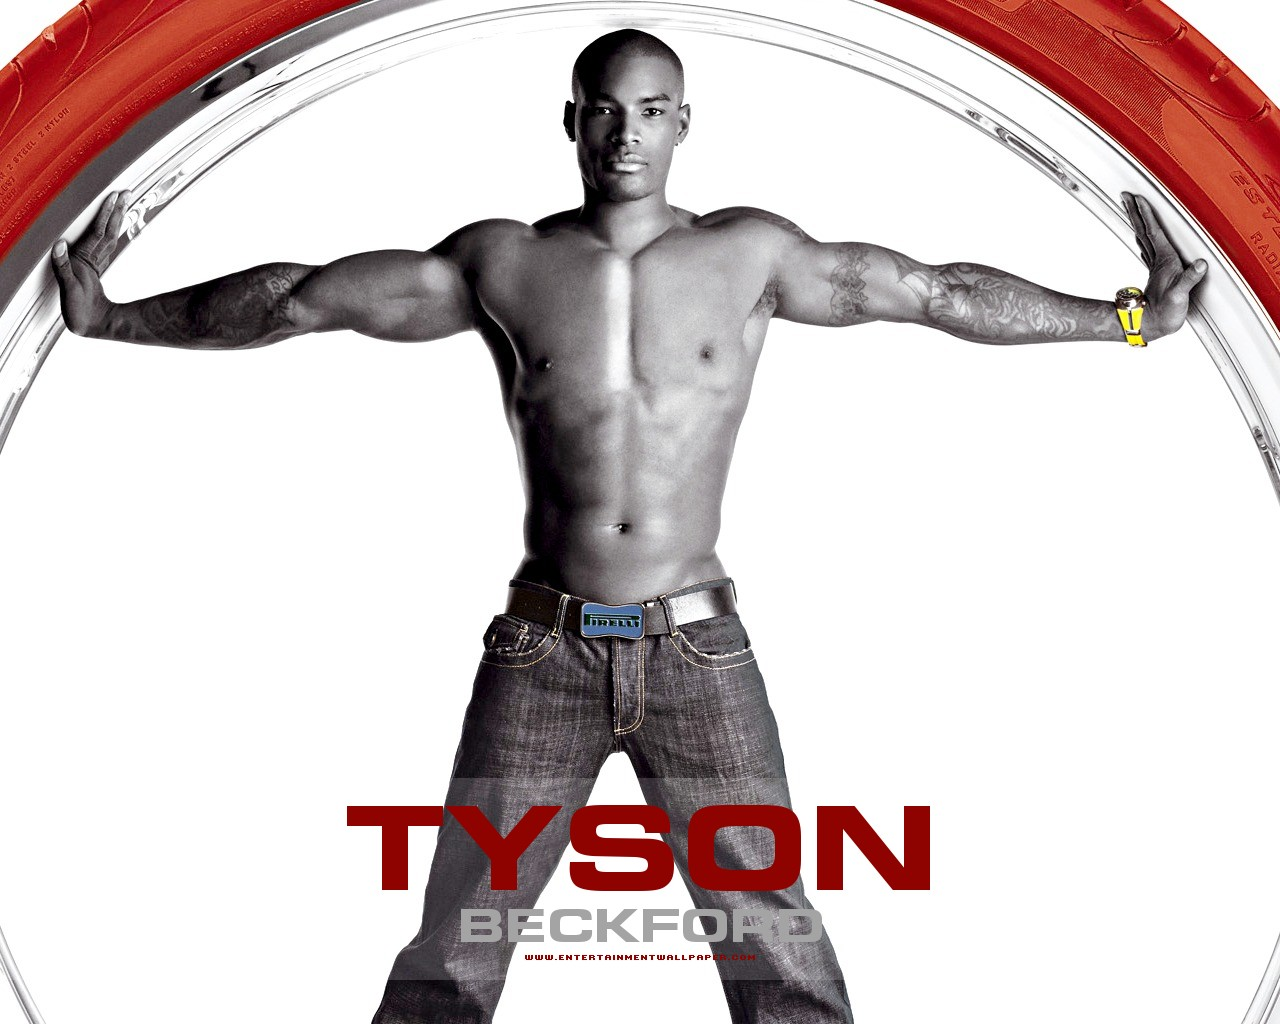 Tyson Beckford Wallpapers Dionne Beard tyson beckford wallpaper